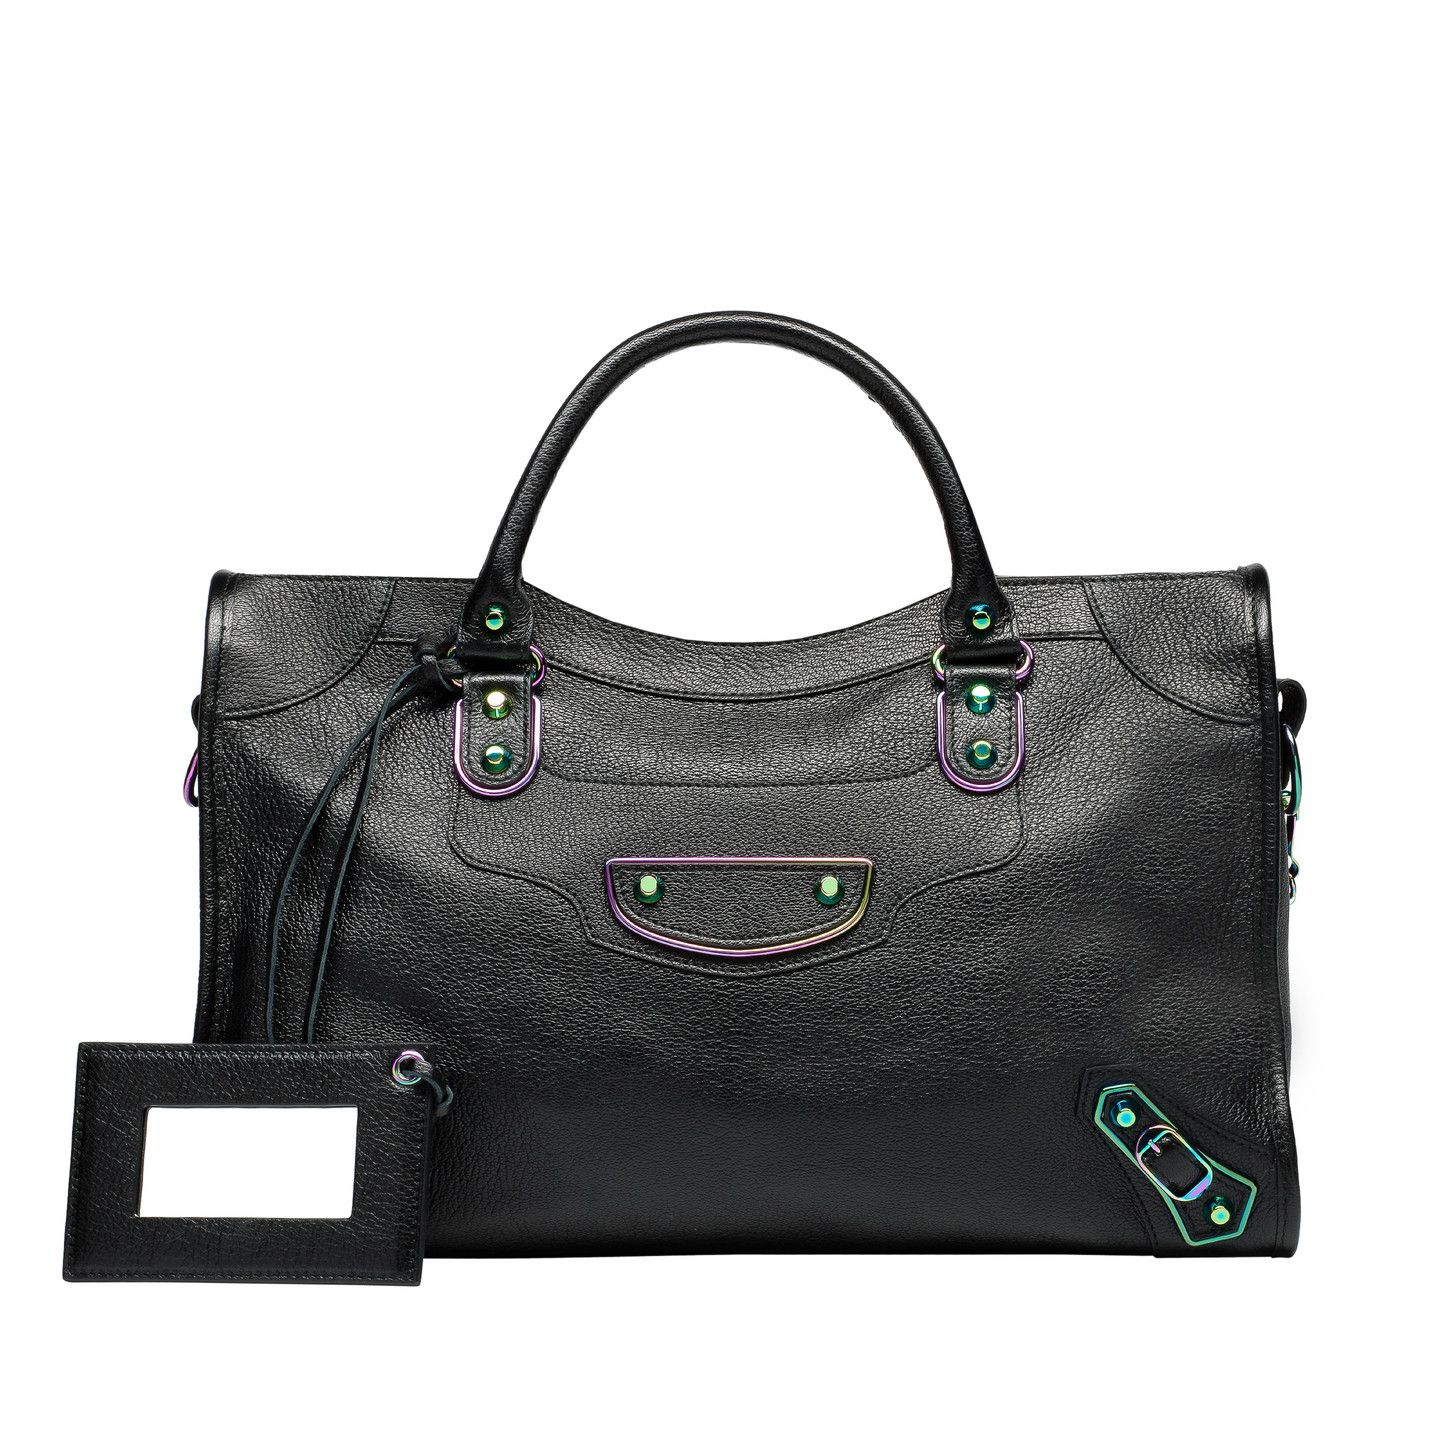 Balenciaga Metallic Edge Iridescent Bags Women Black - Discover the latest  collection and buy online Women on the Official Online Store. 0a75c8916c6e6